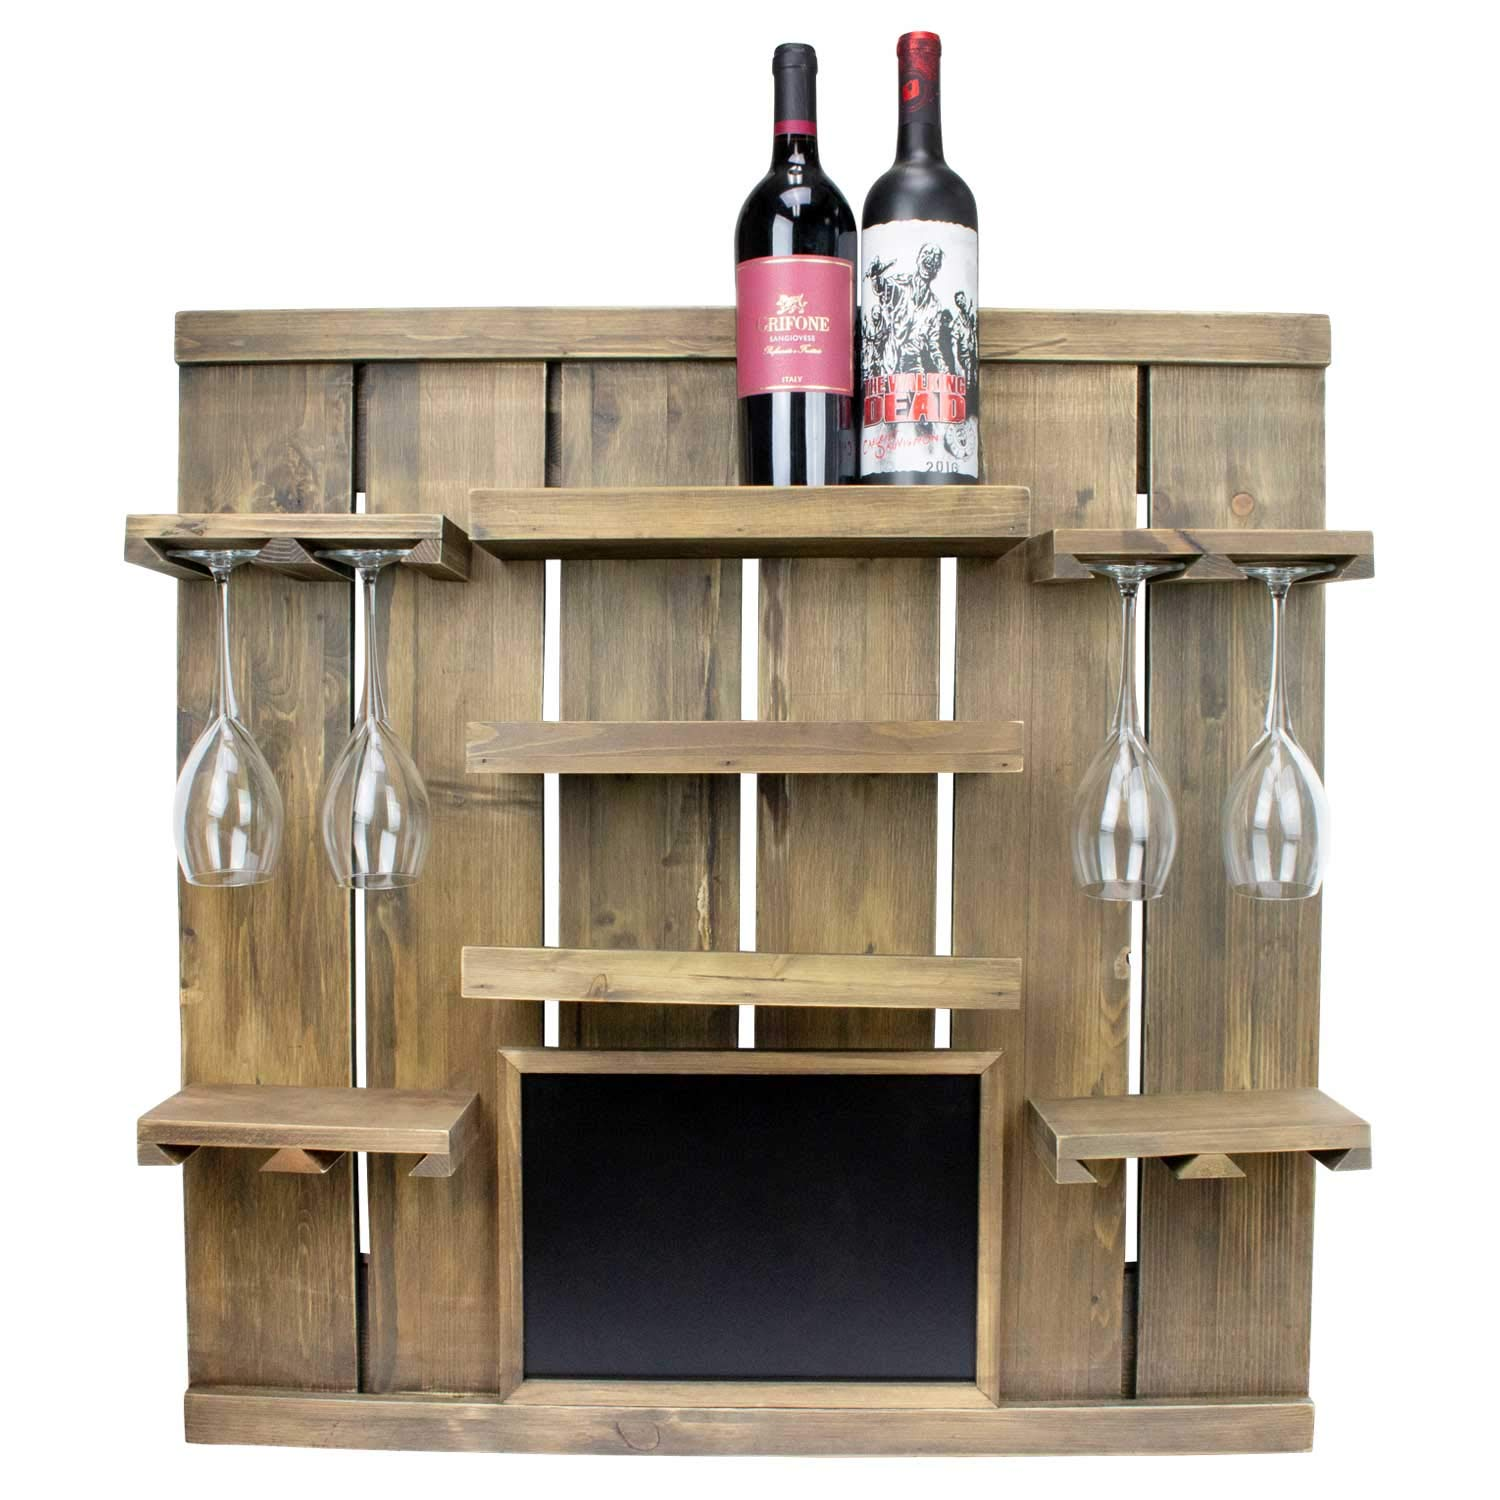 Atterstone Chalkboard Wine Rack Shelf, Wall Mounted, Wooden Wine Rack Shelf, Comes with 3 Horizontal Wine Racks and Hanging Stemware Holders for 8 glasses